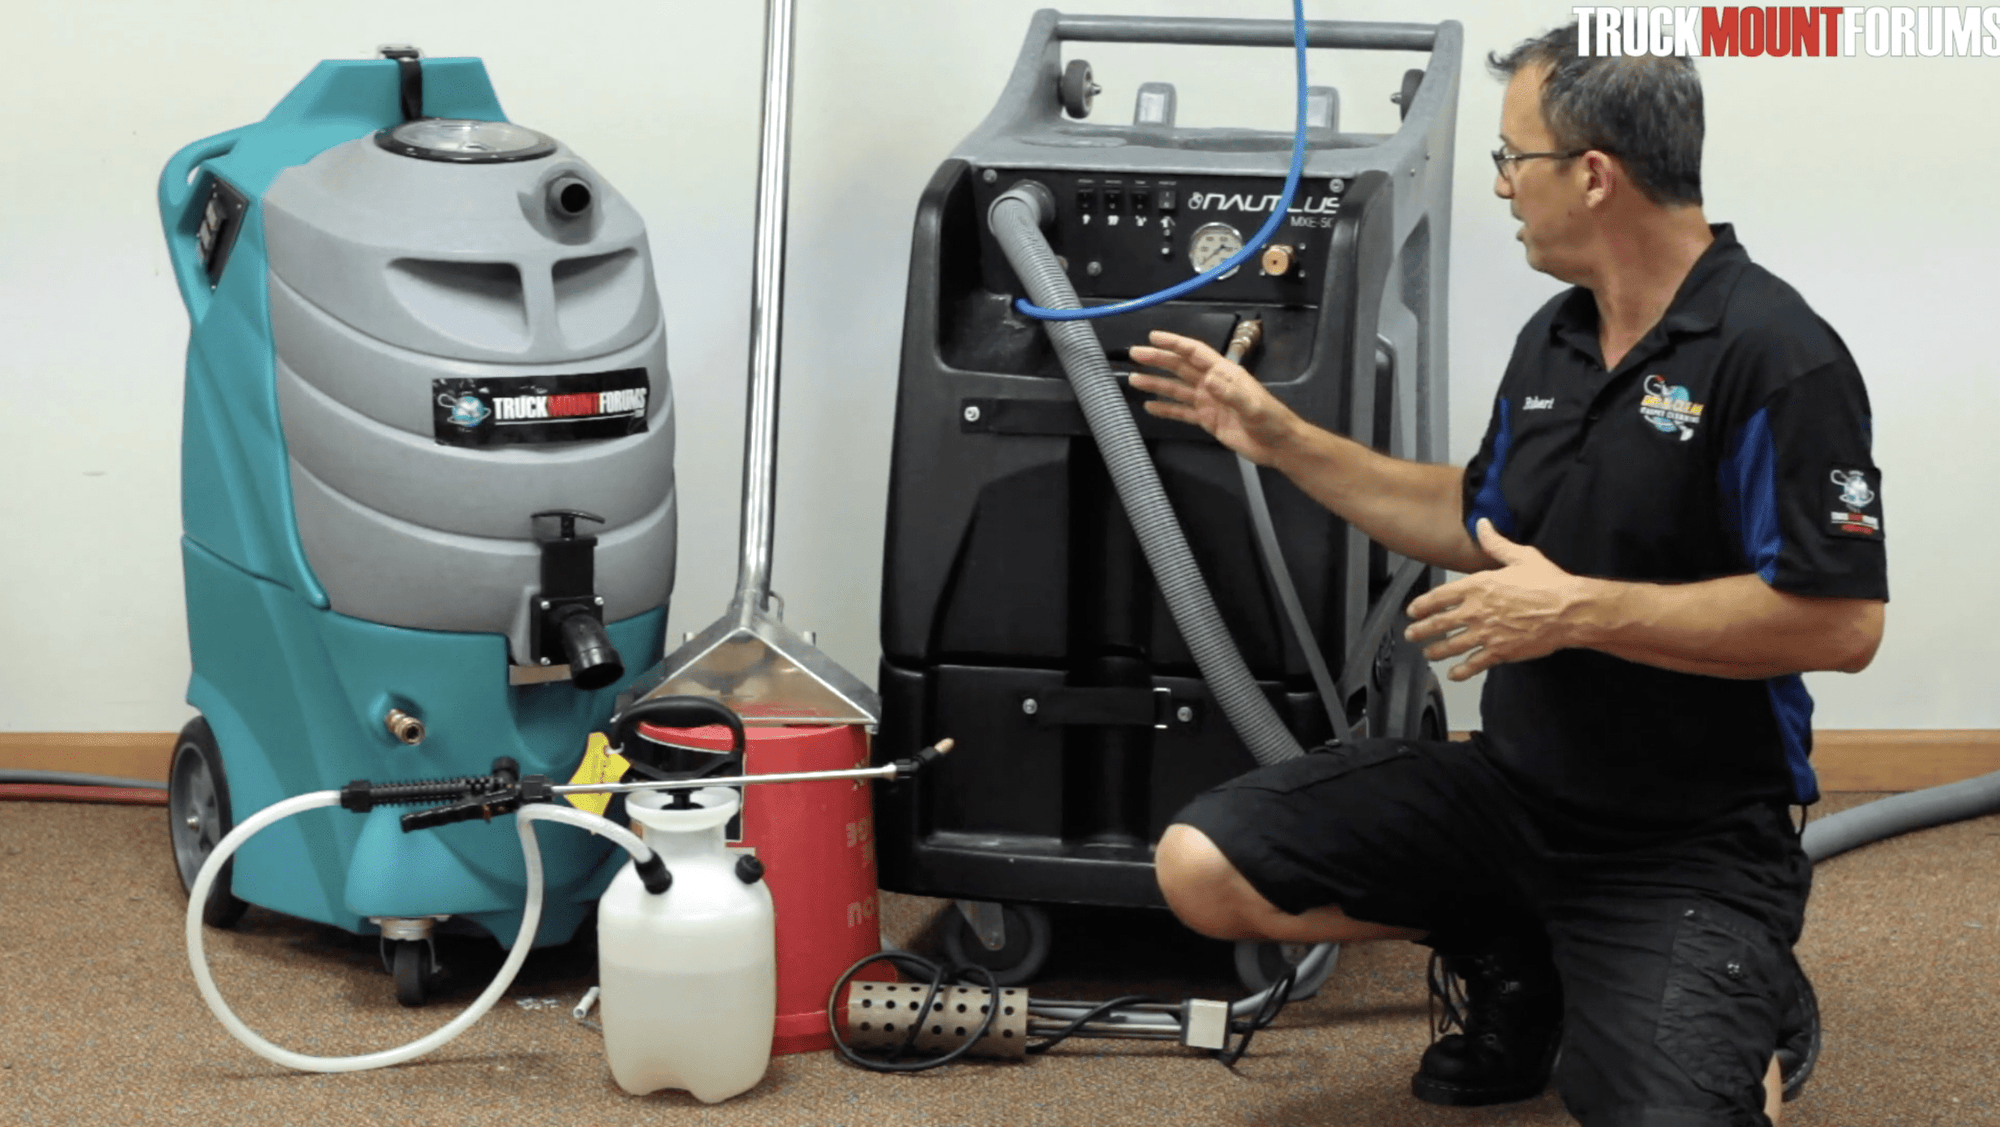 Hot Water Extraction Online Course - TMF Store: Carpet Cleaning Equipment & Chemicals from TruckMountForums